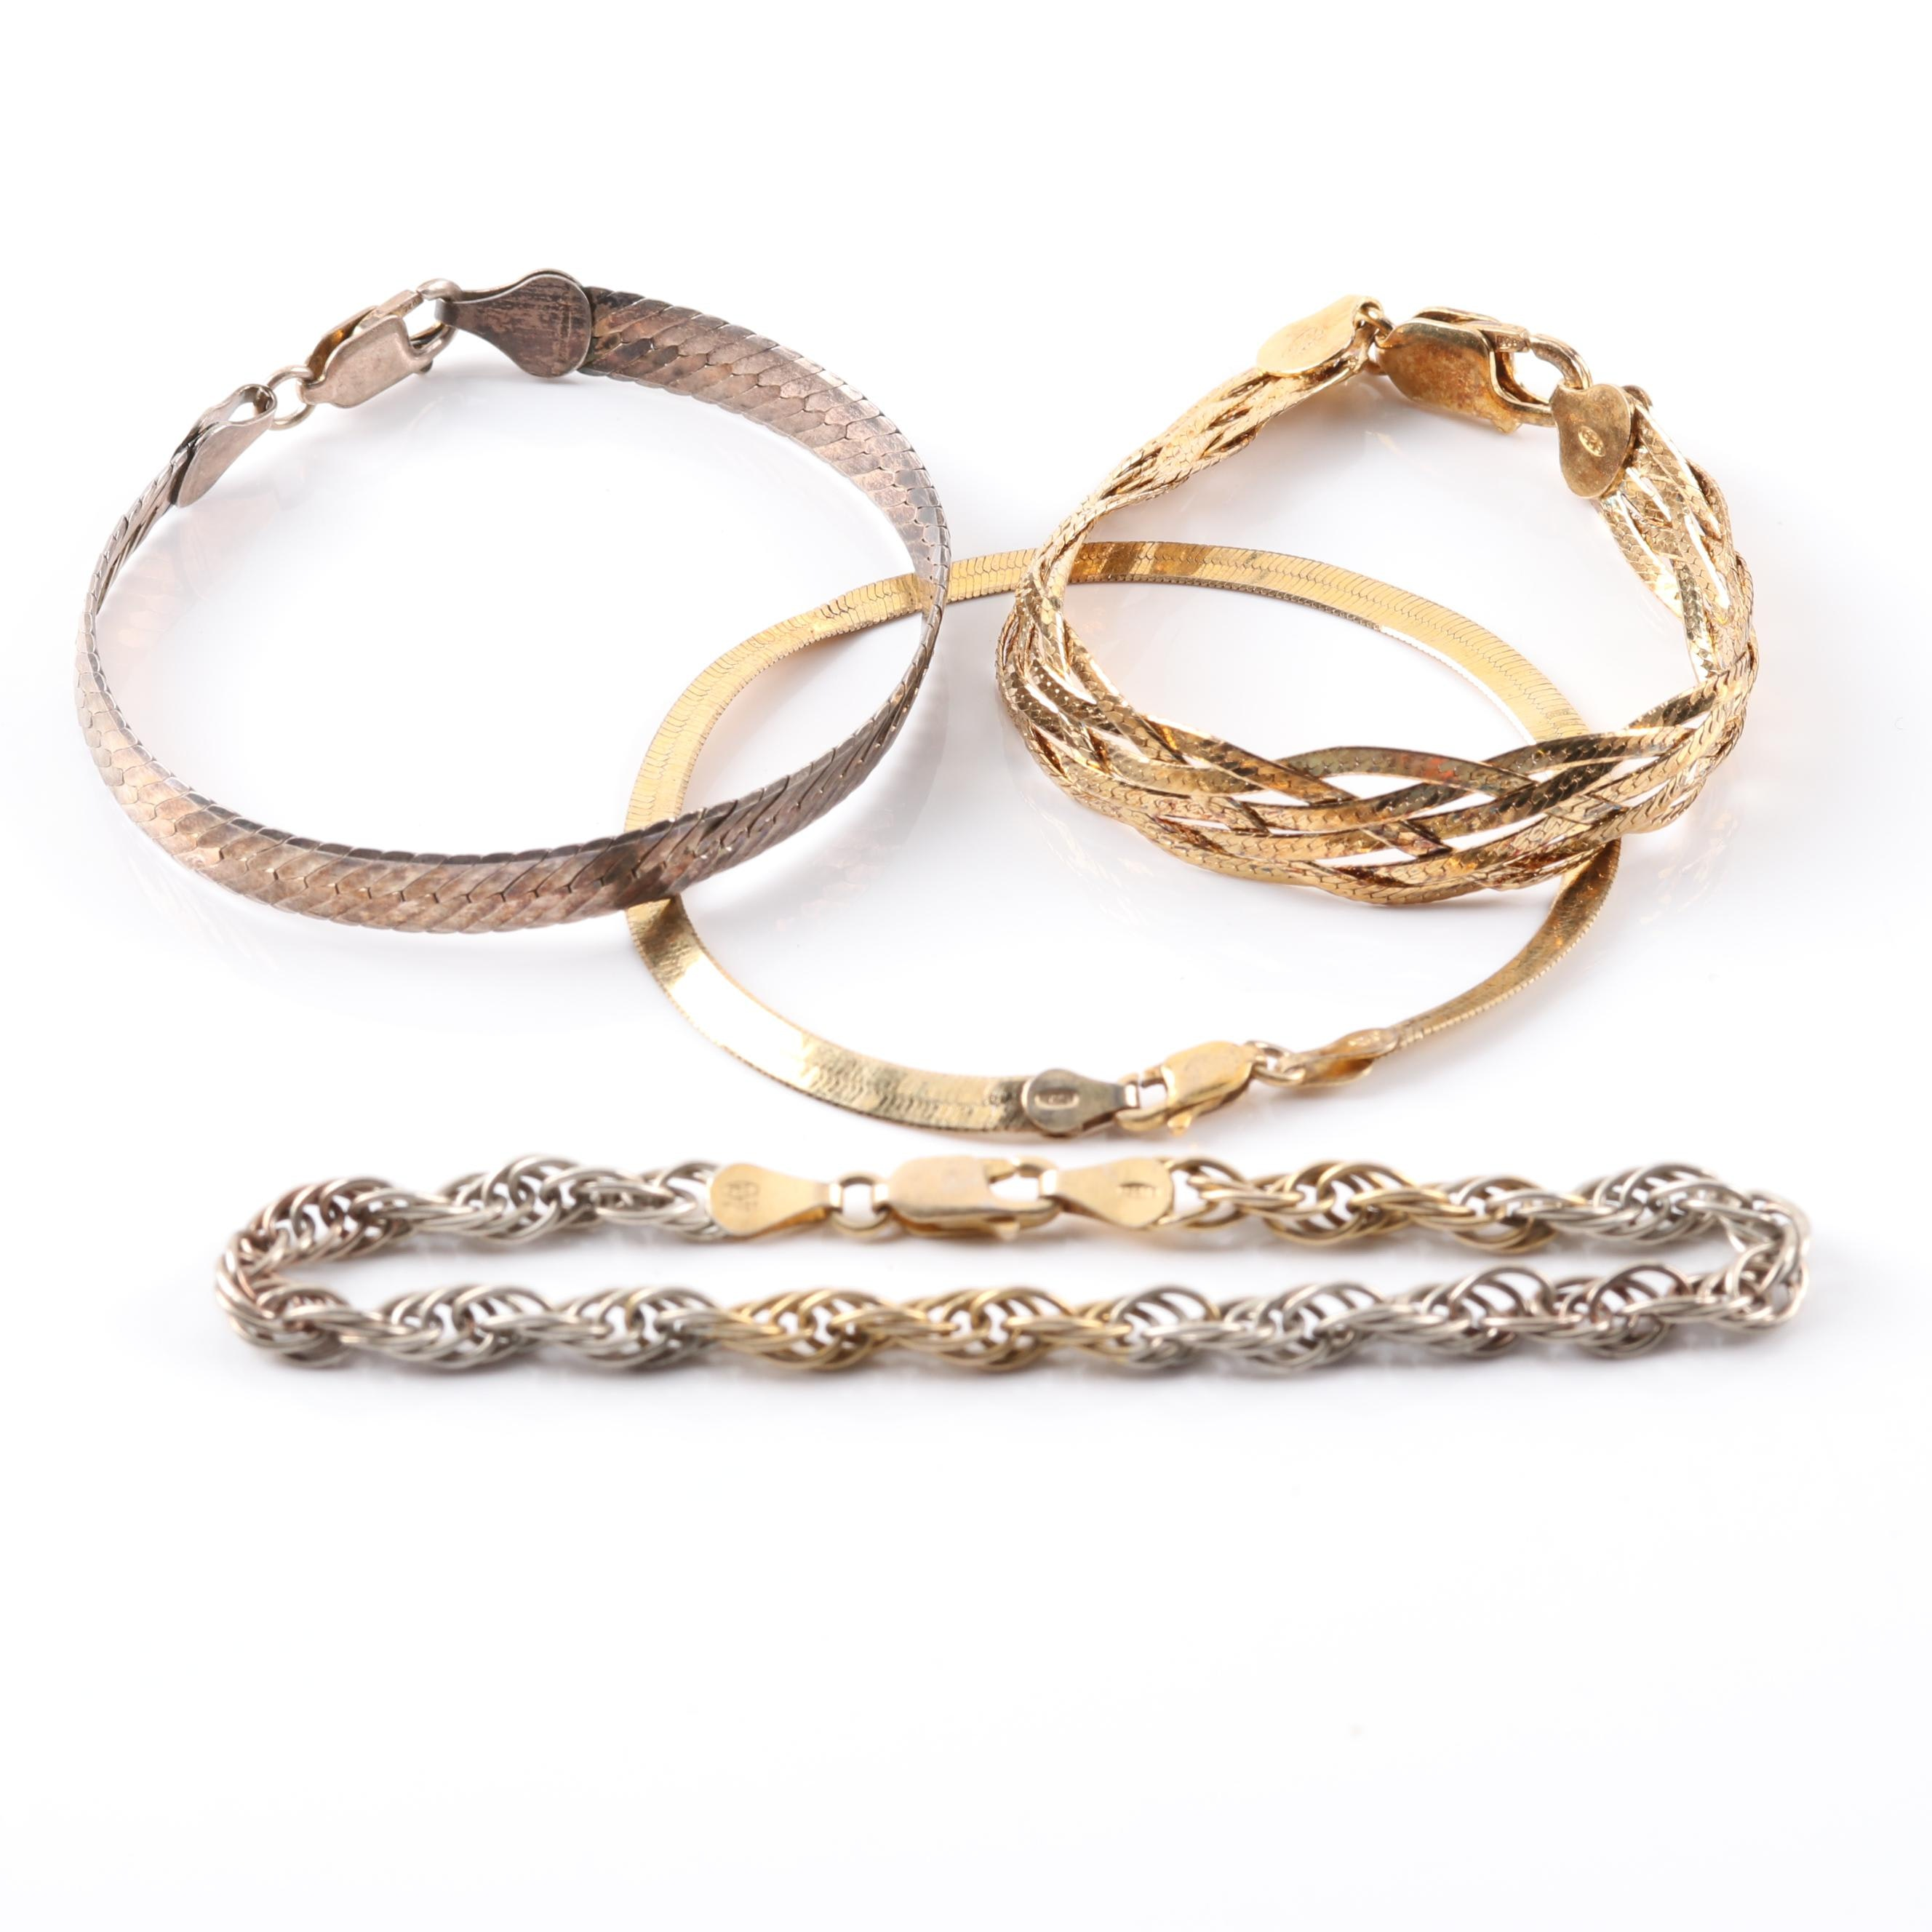 Sterling Silver and Goldwashed Bracelets